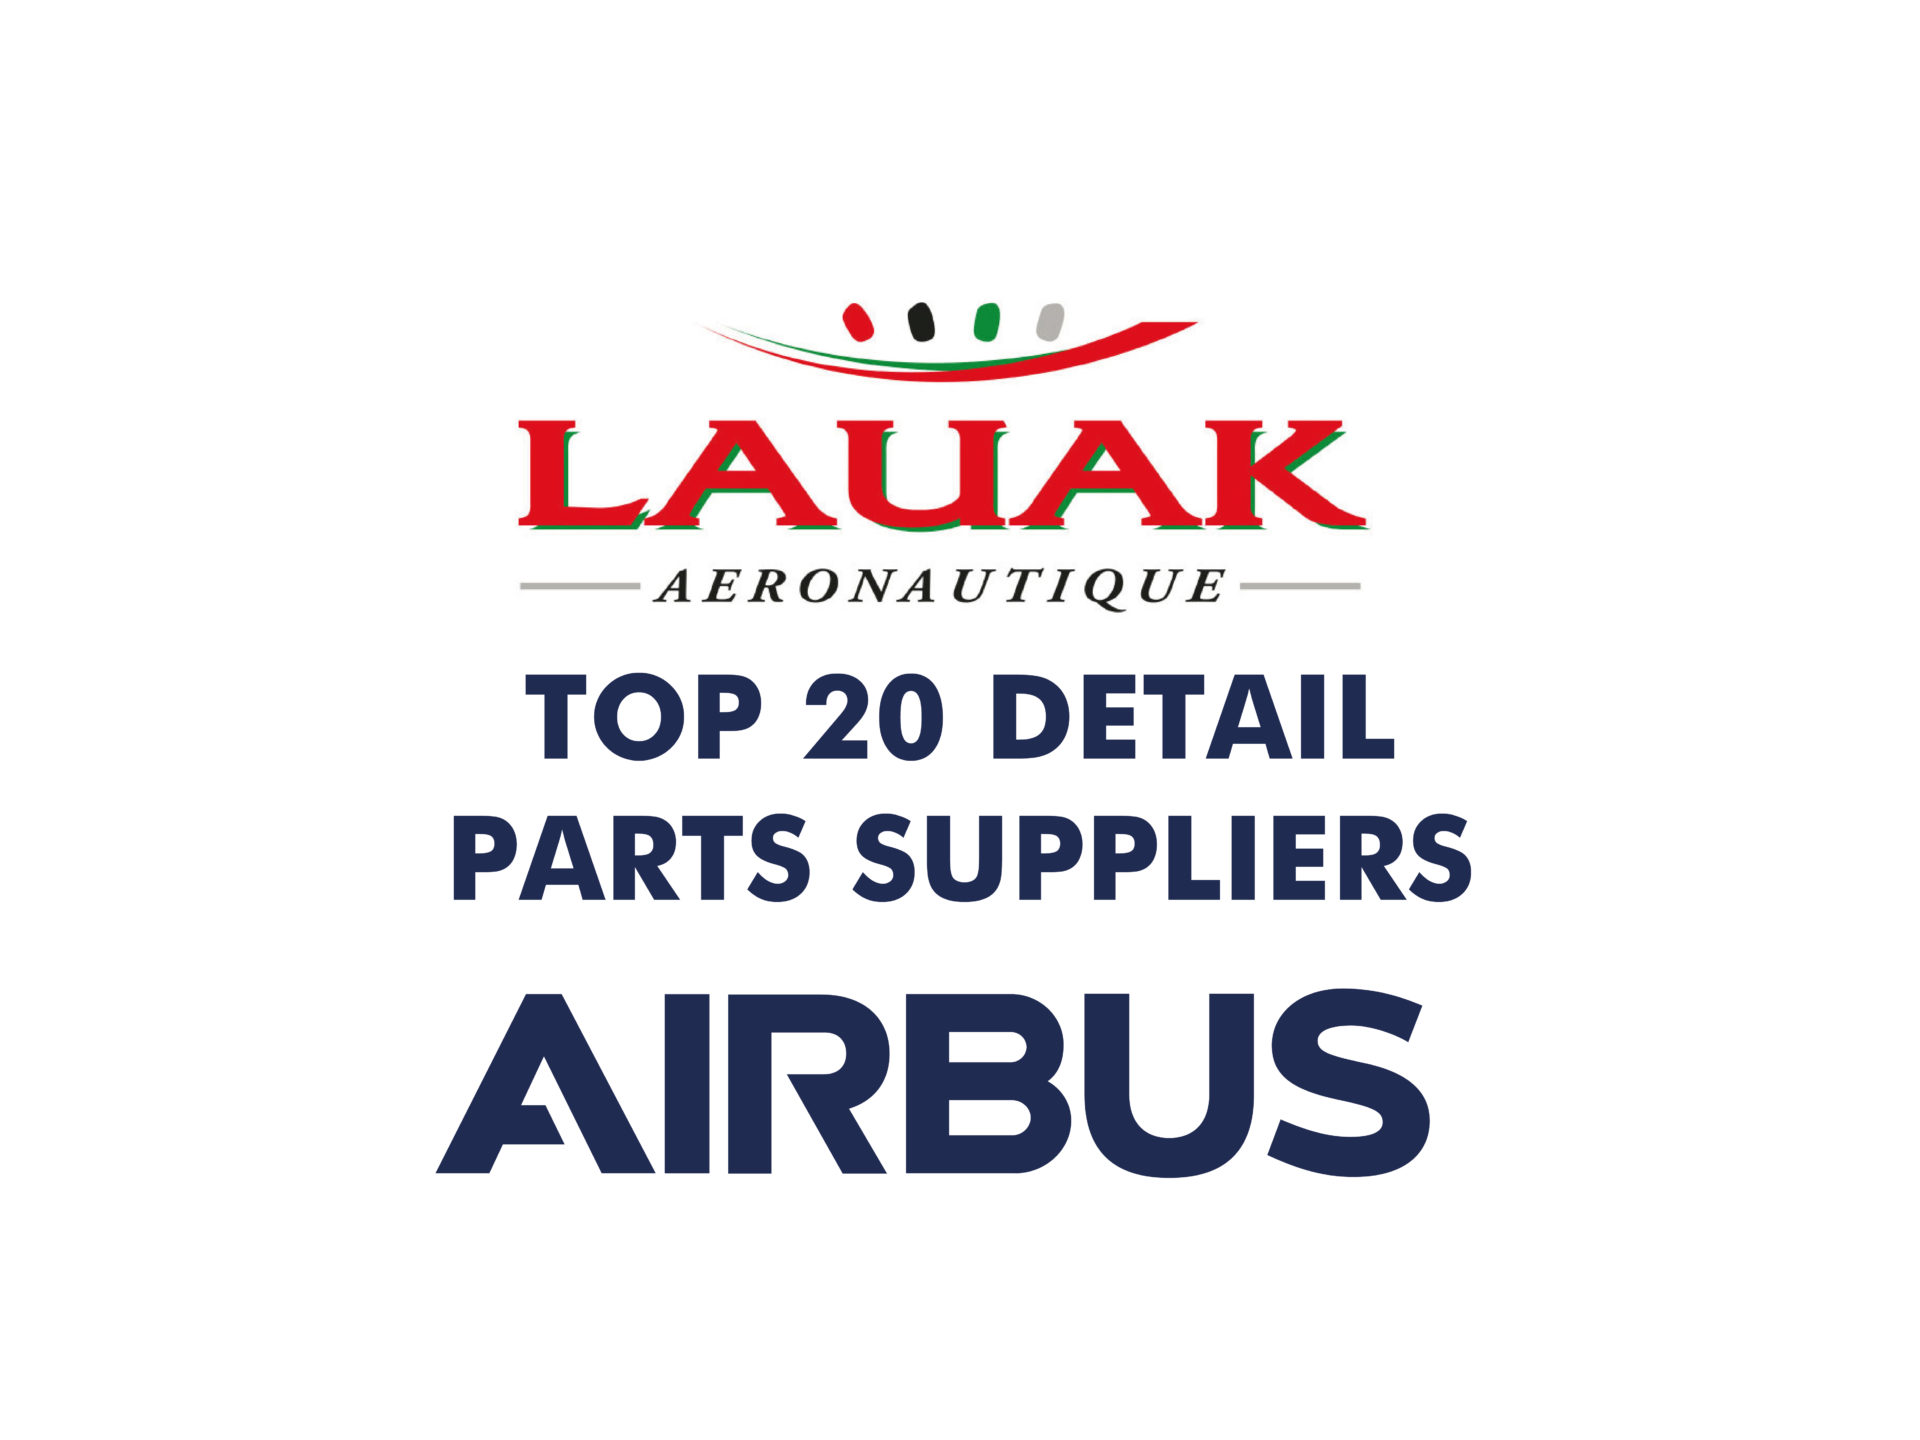 LAUAK dans LE TOP 20 DETAIL PARTS SUPPLIERS D'AIRBUS